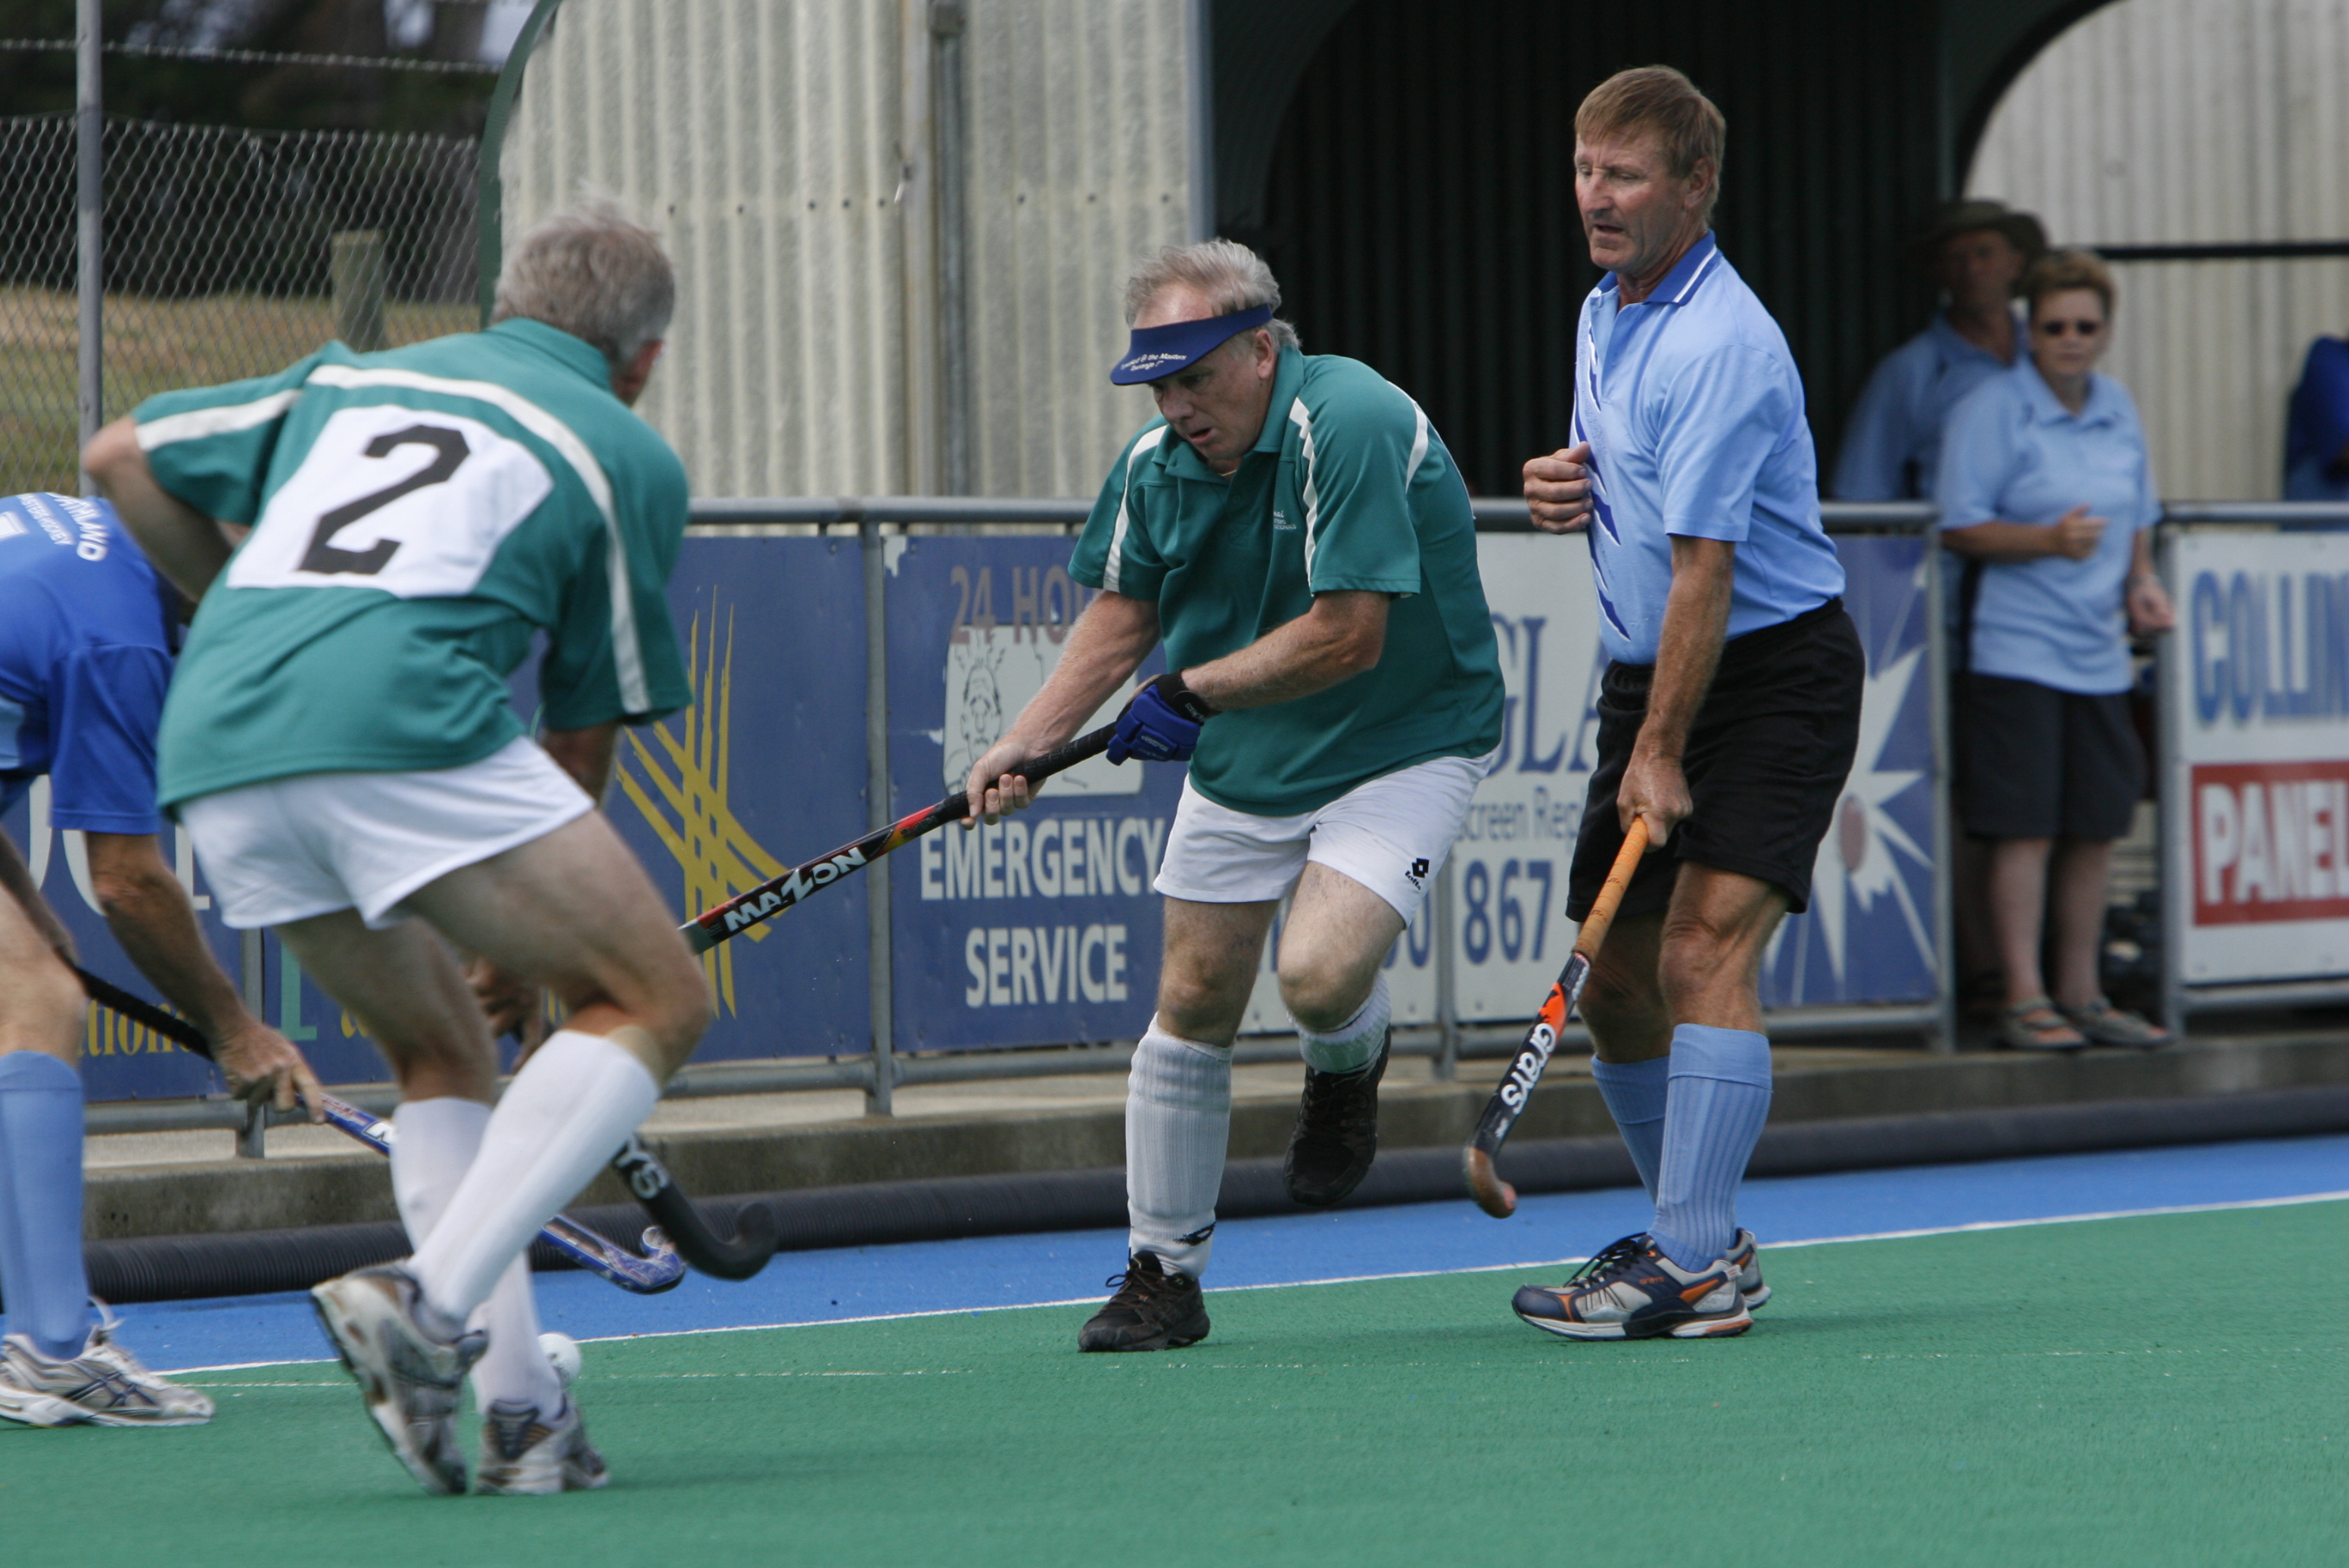 Bruce playing masters hockey.